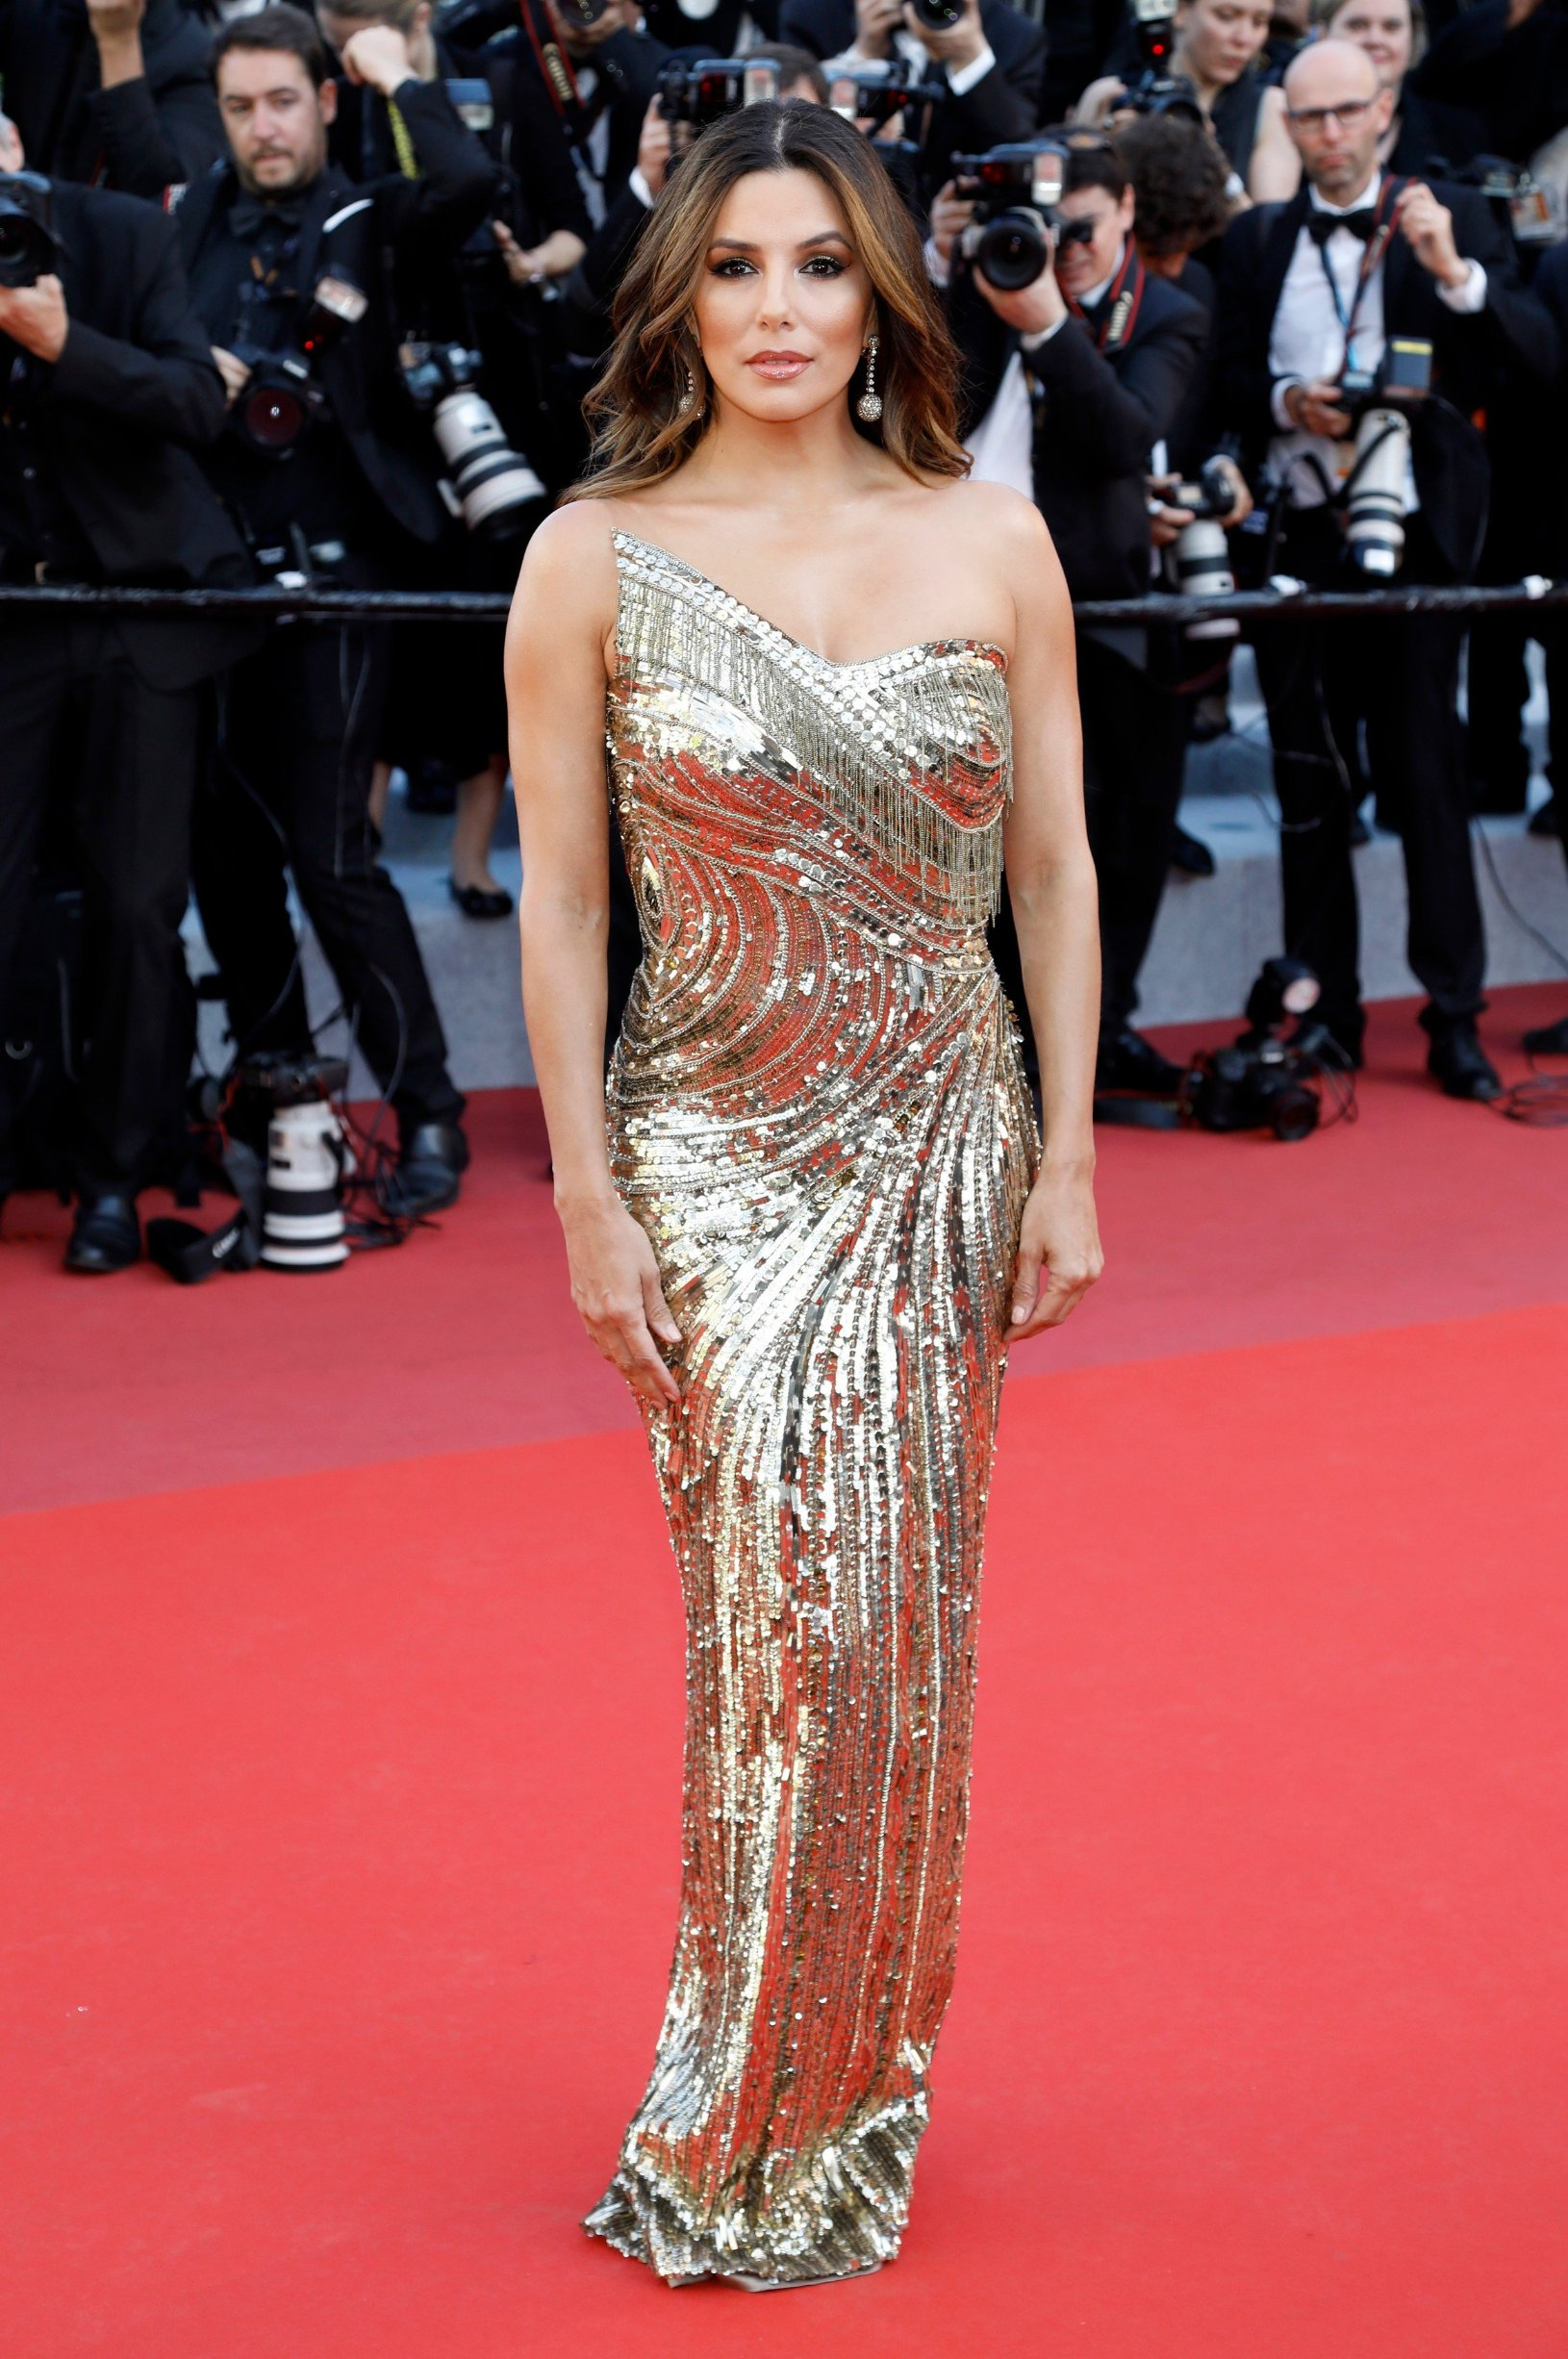 May 16, 2019 - Cannes, Alpes-Maritimes, Frankreich - Eva Longoria attending the 'Rocketman' premiere during the 72nd Cannes Film Festival at the Palais des Festivals on May15, 2019 in Cannes, France, Image: 433865331, License: Rights-managed, Restrictions: , Model Release: no, Credit line: Profimedia, Zuma Press - Entertaiment